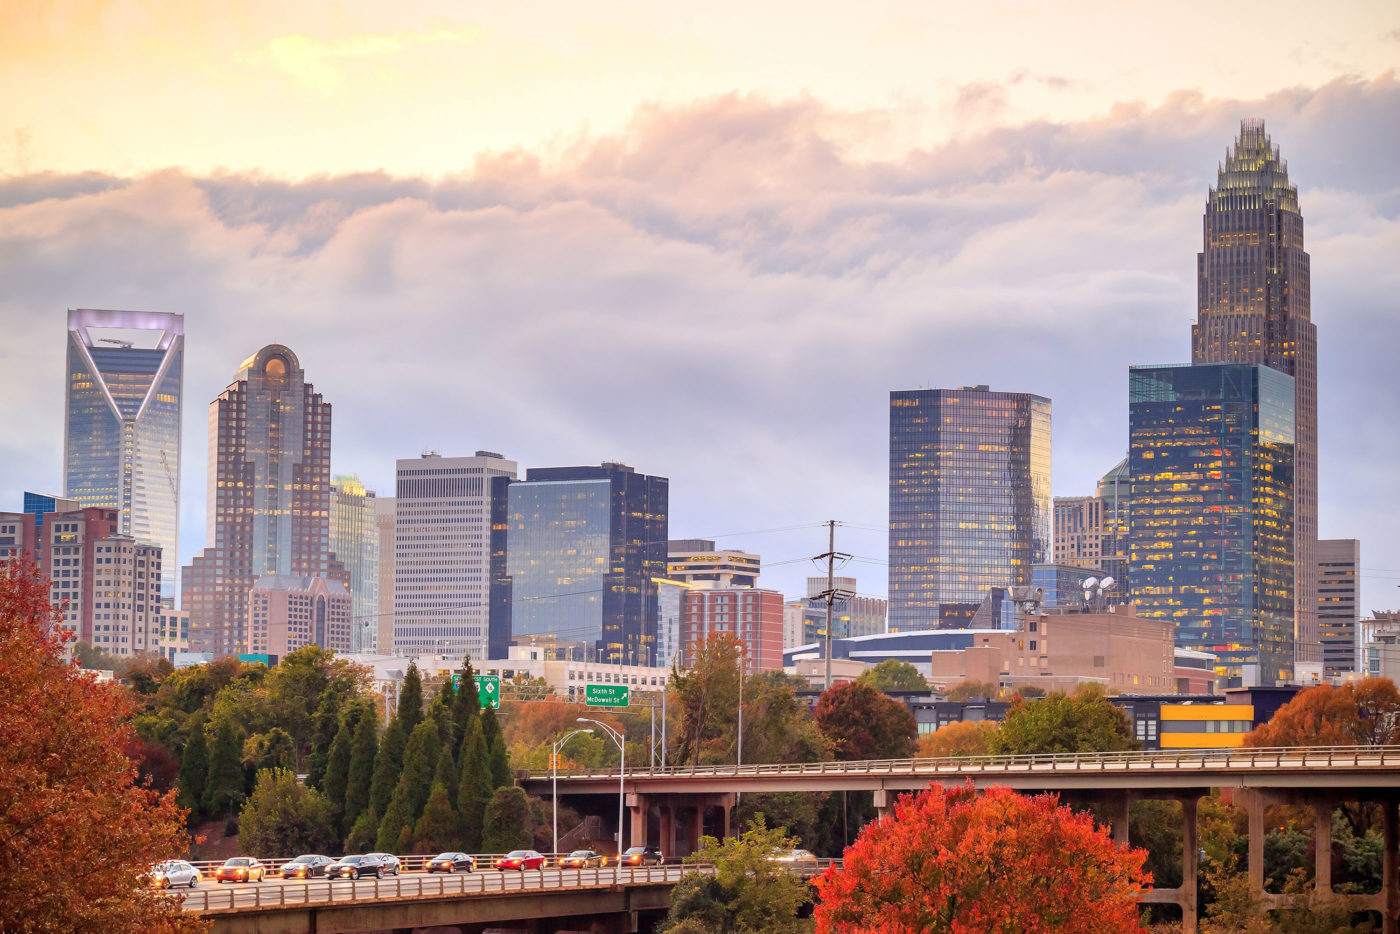 Apply to These 10 Tech Companies Hiring in Charlotte